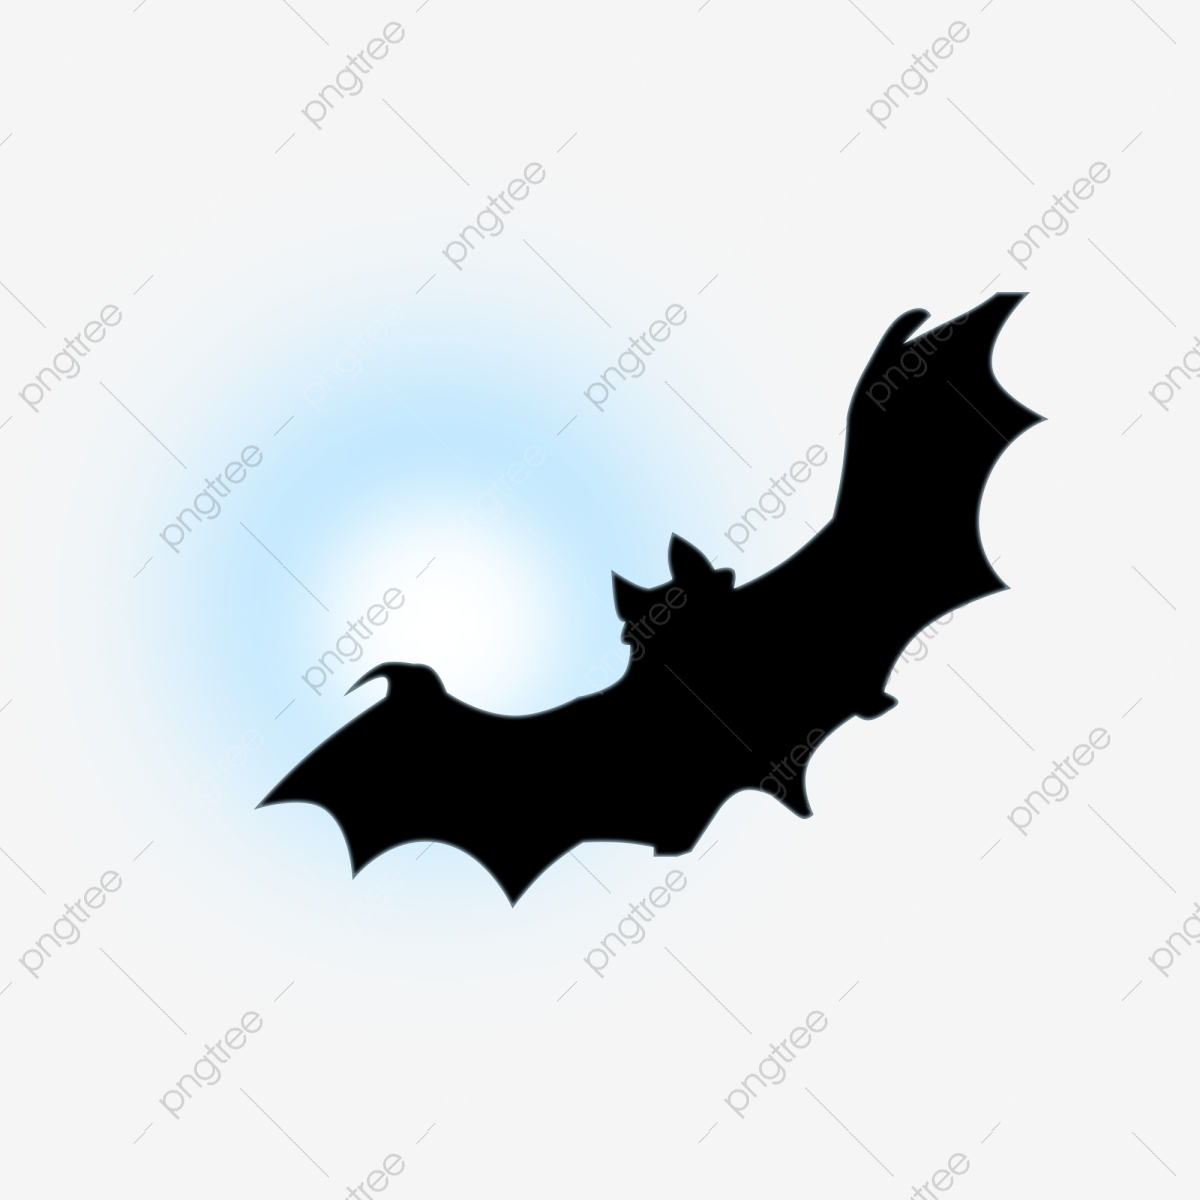 hight resolution of commercial use resource upgrade to premium plan and get license authorization upgradenow bat family family clipart